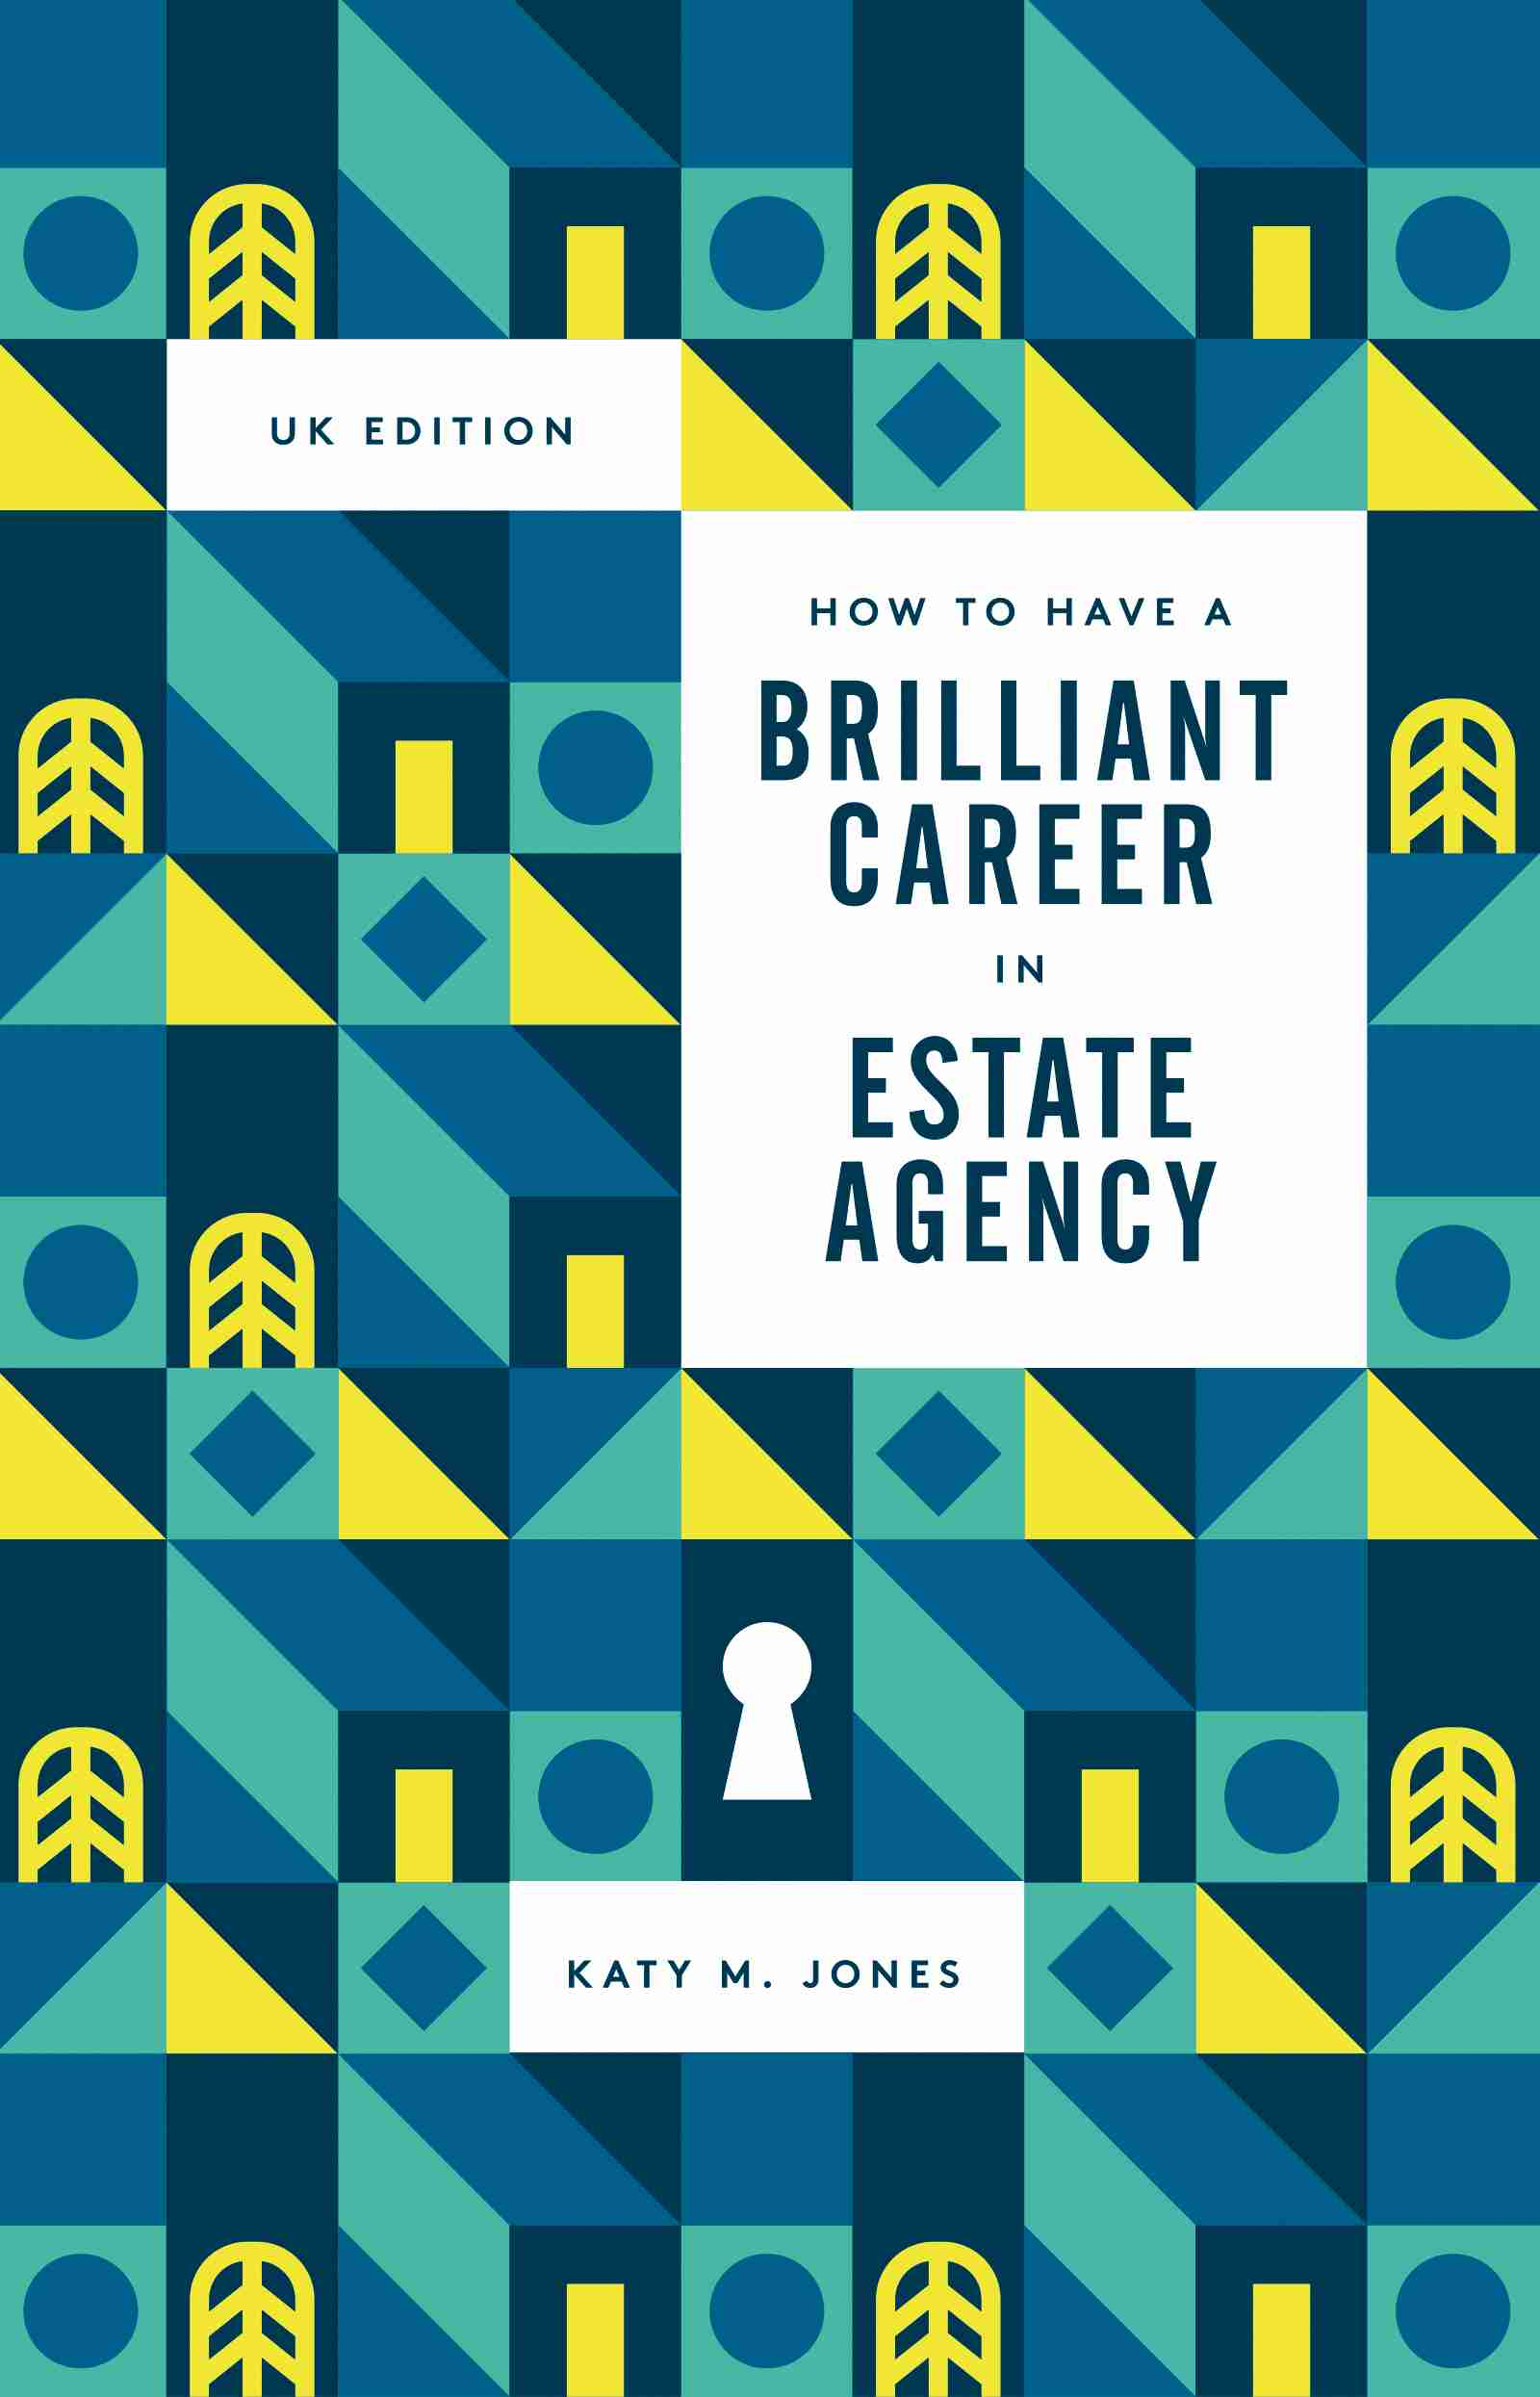 How to Have a Brilliant Career in Estate Agency by Katy M. Jones